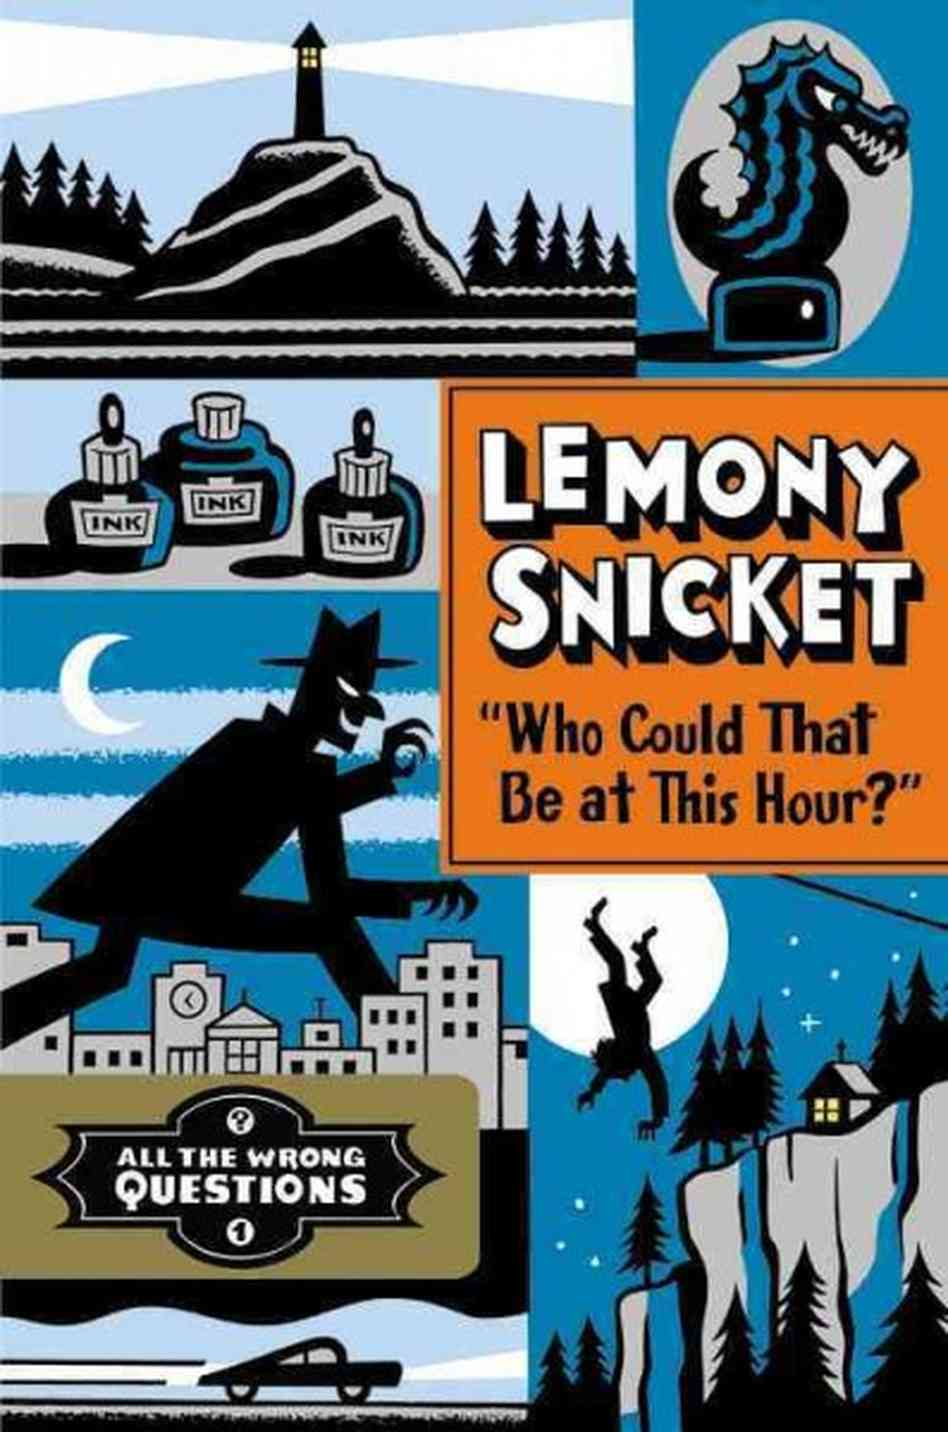 Who Could That be at This Hour?  by Lemony Snicket, the first installment in the All the Wrong Questions series (via  Chapters & Scenes )